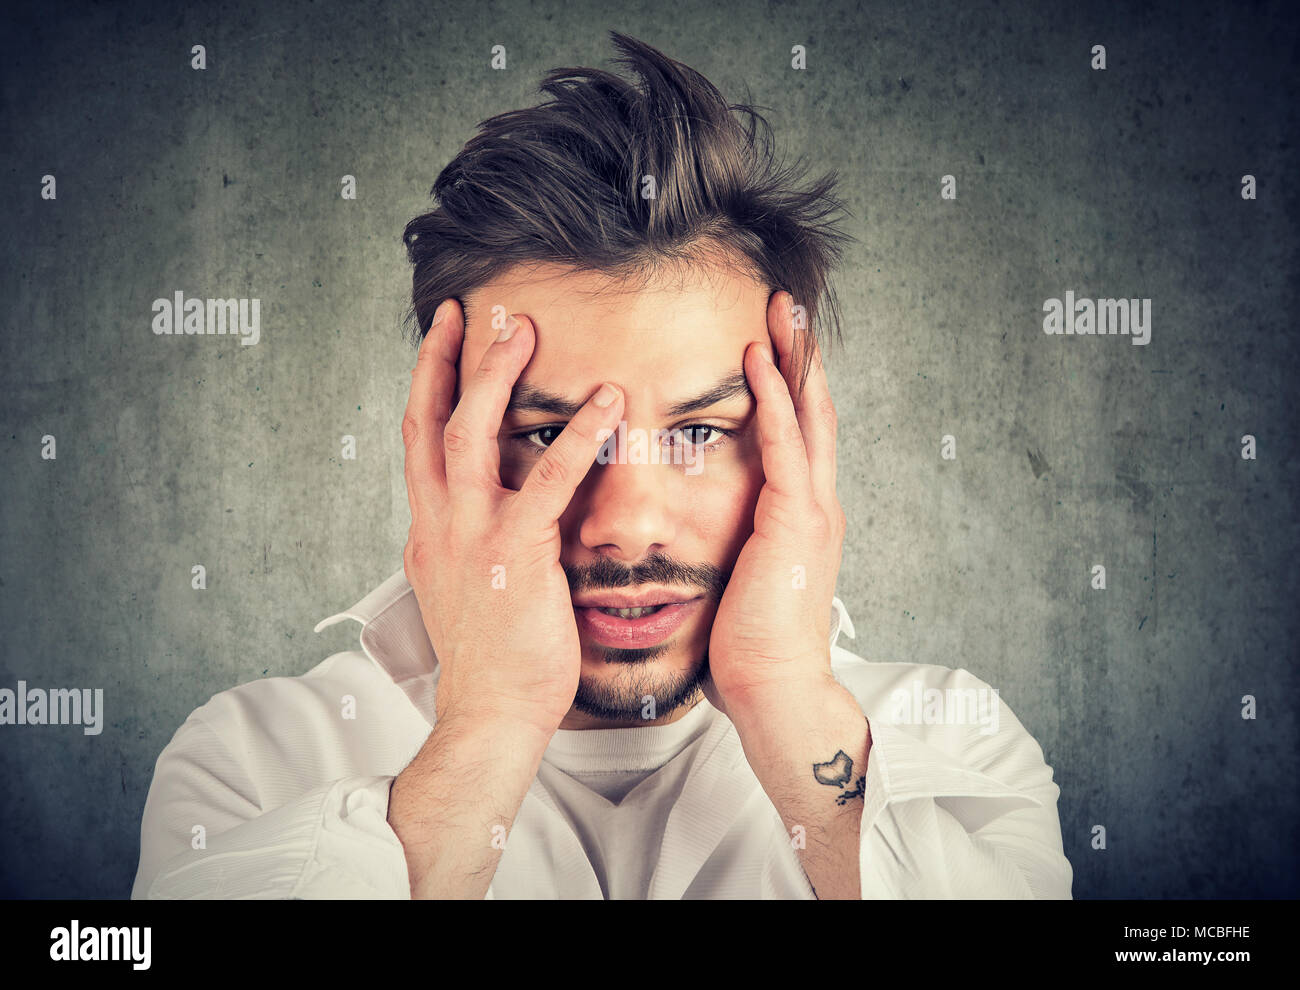 Miserable guy having a big problem and covering face dramatically looking at camera. - Stock Image